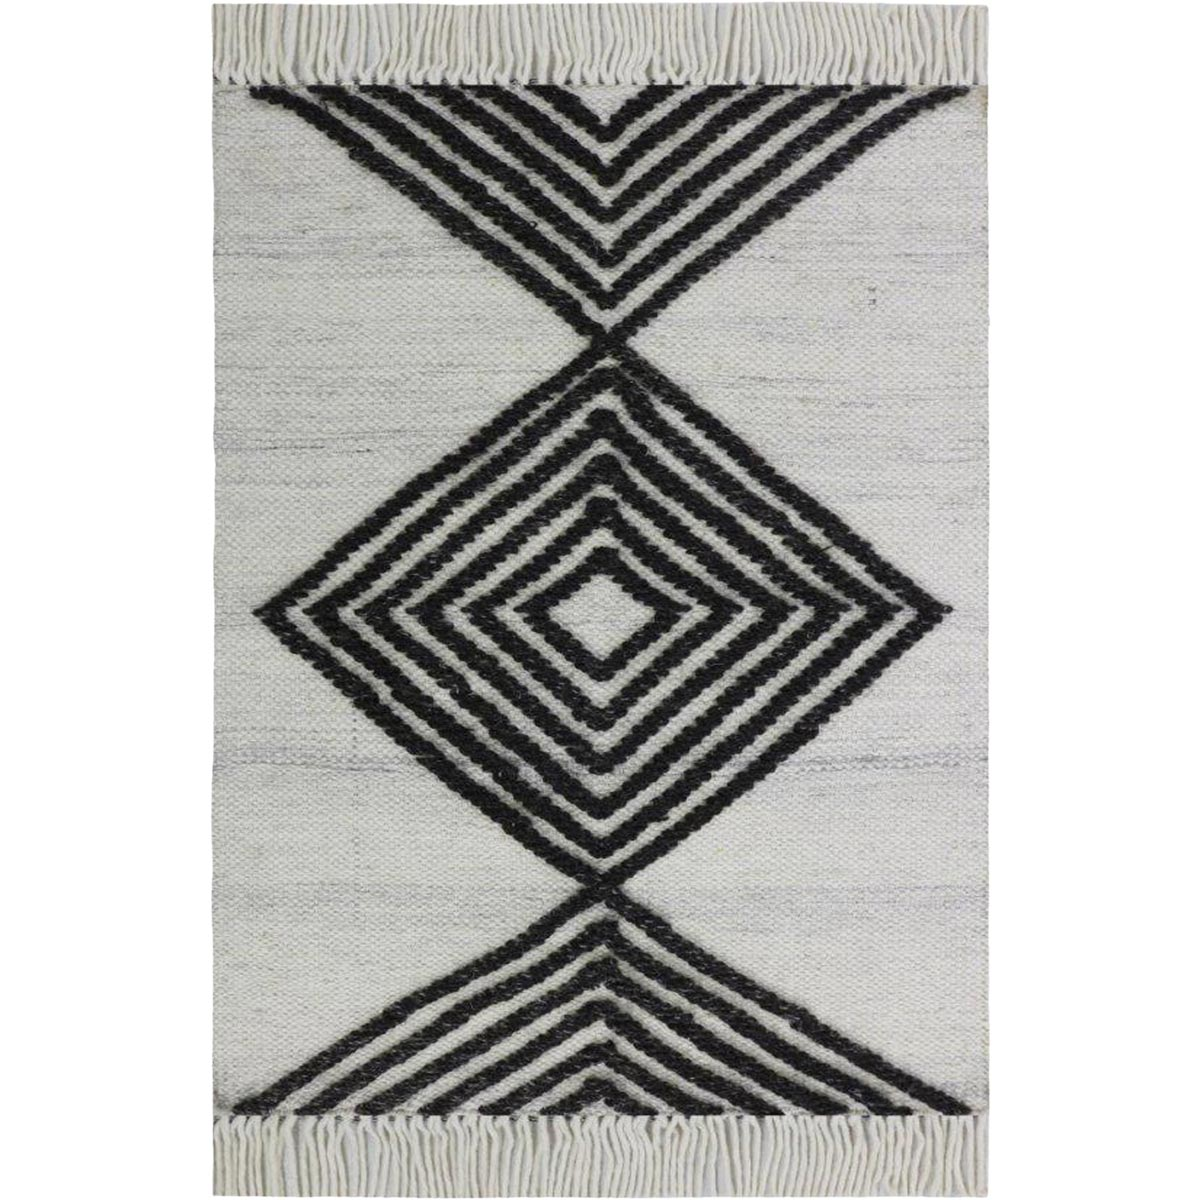 Tangier Rug 16 White/Dark Grey 1